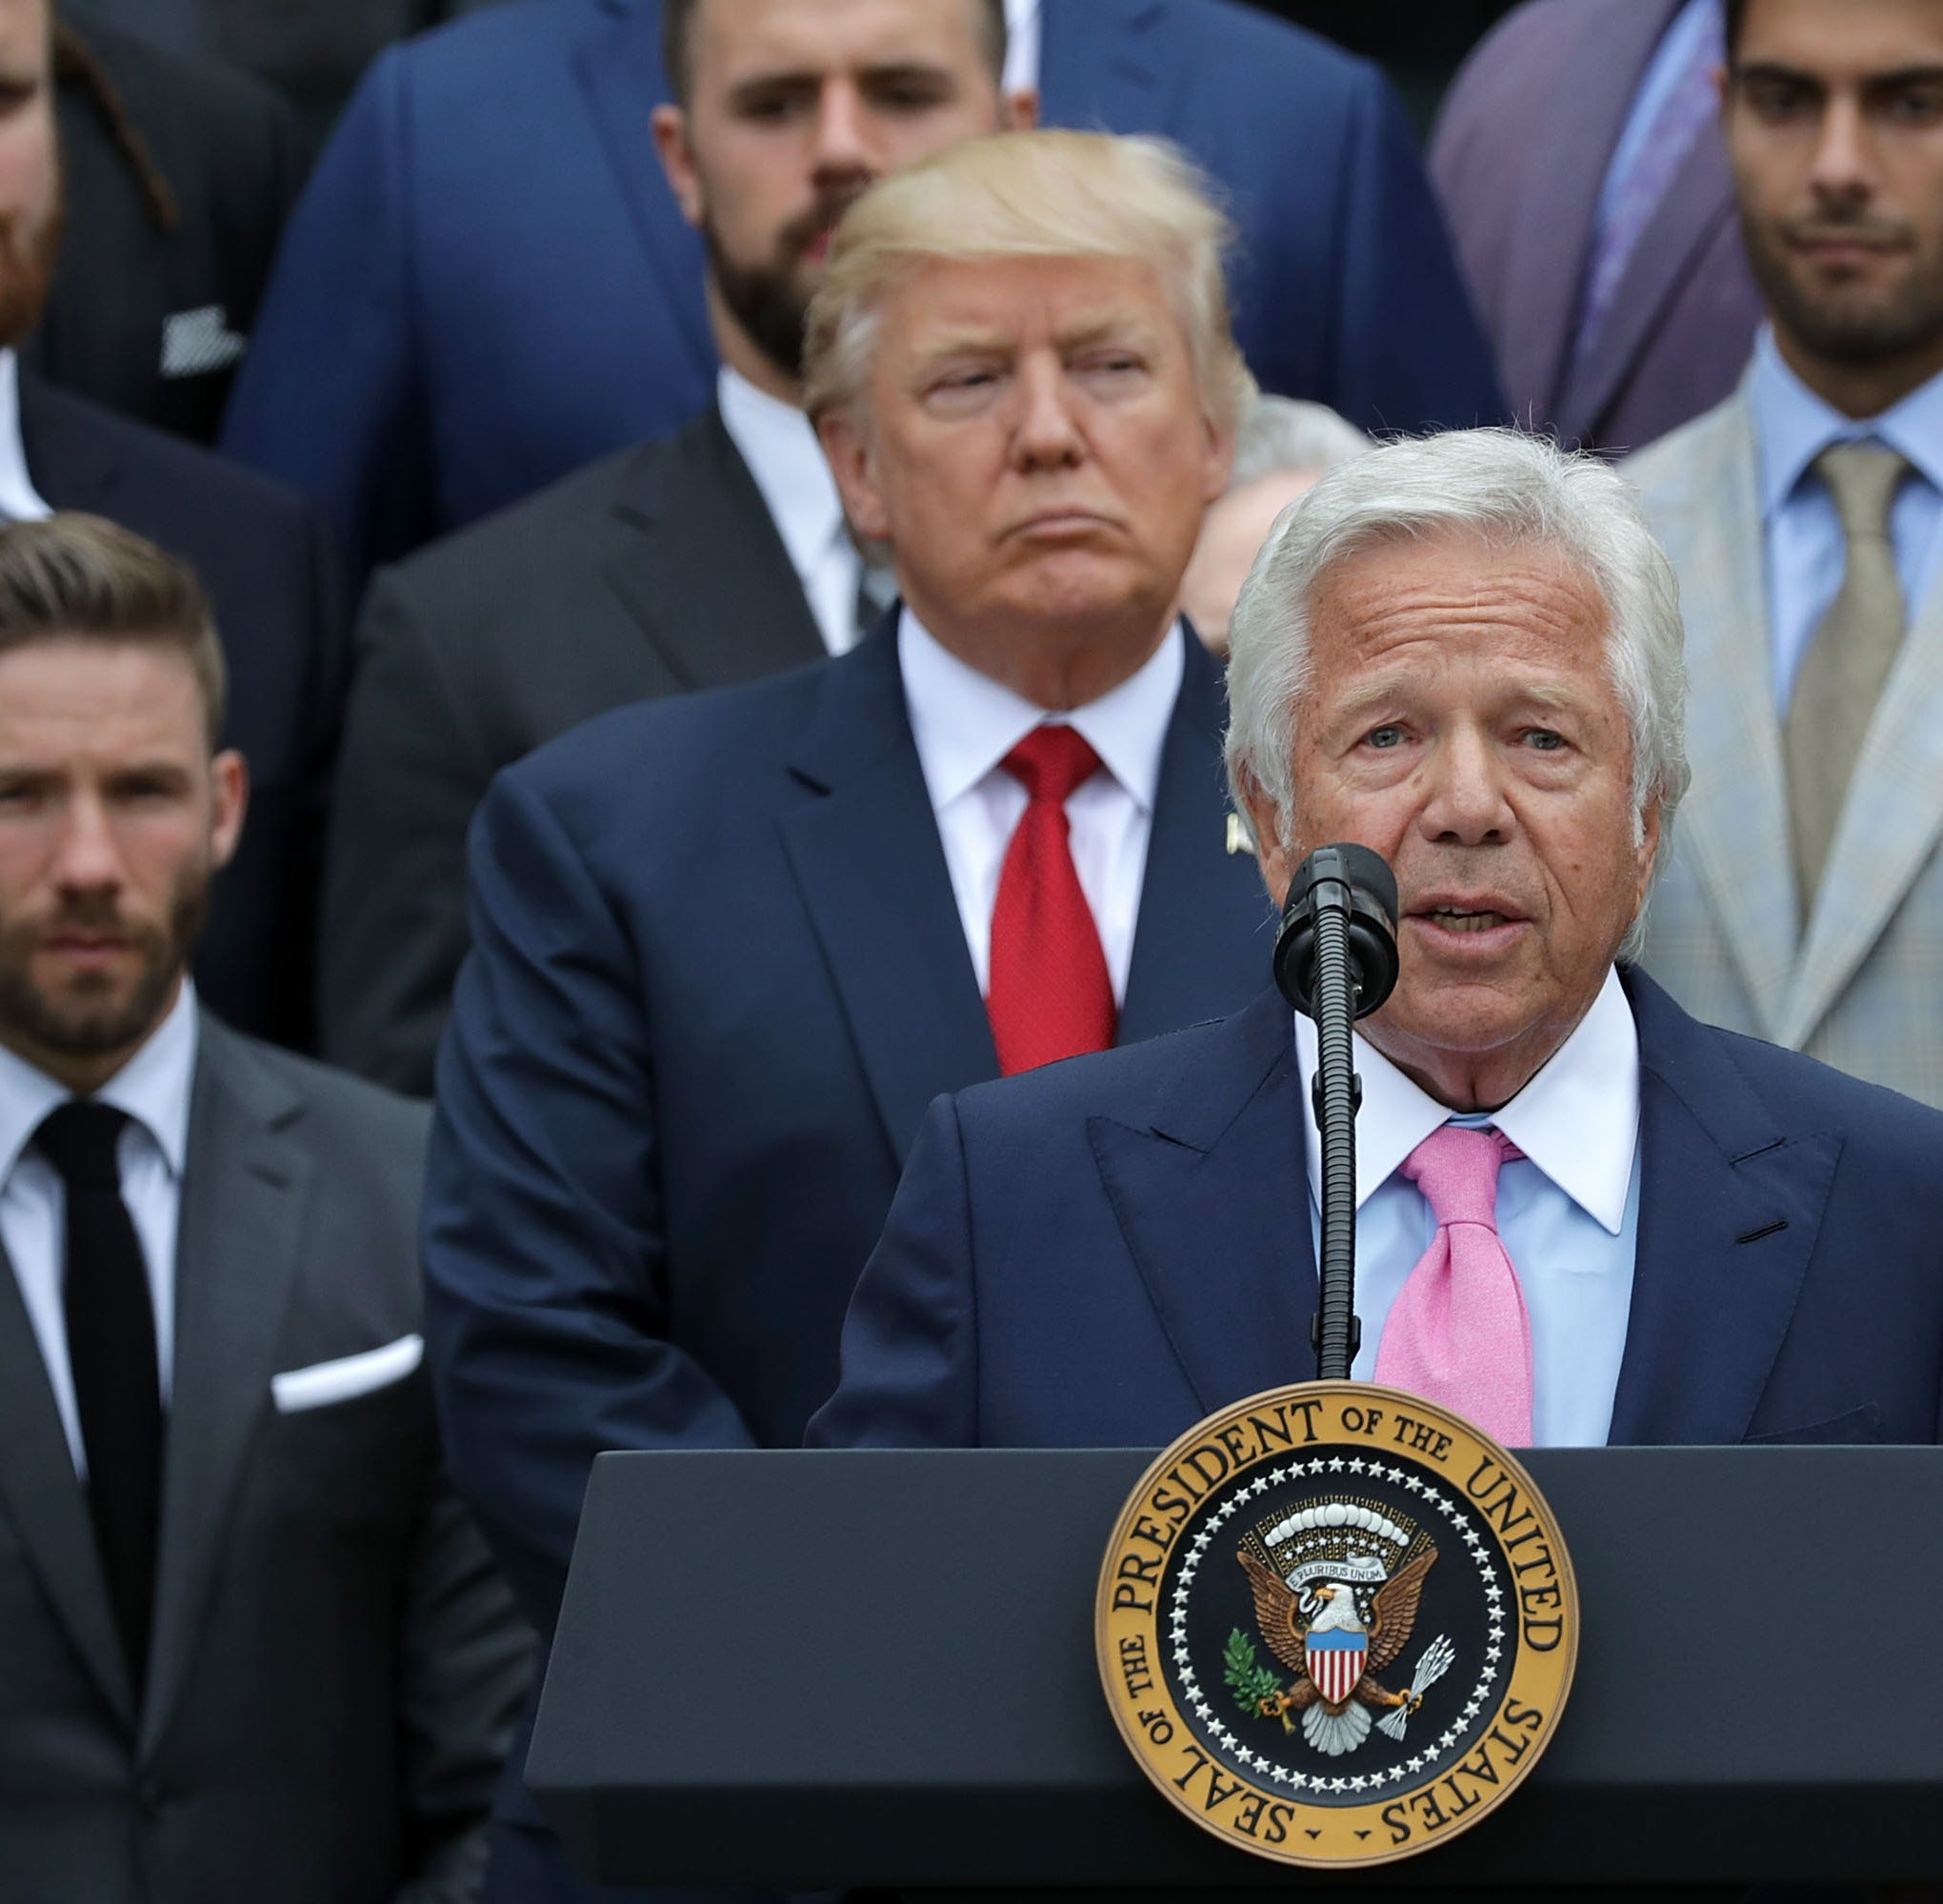 'It's very sad': President Trump on Patriots owner Robert Kraft's soliciting prostitution charges